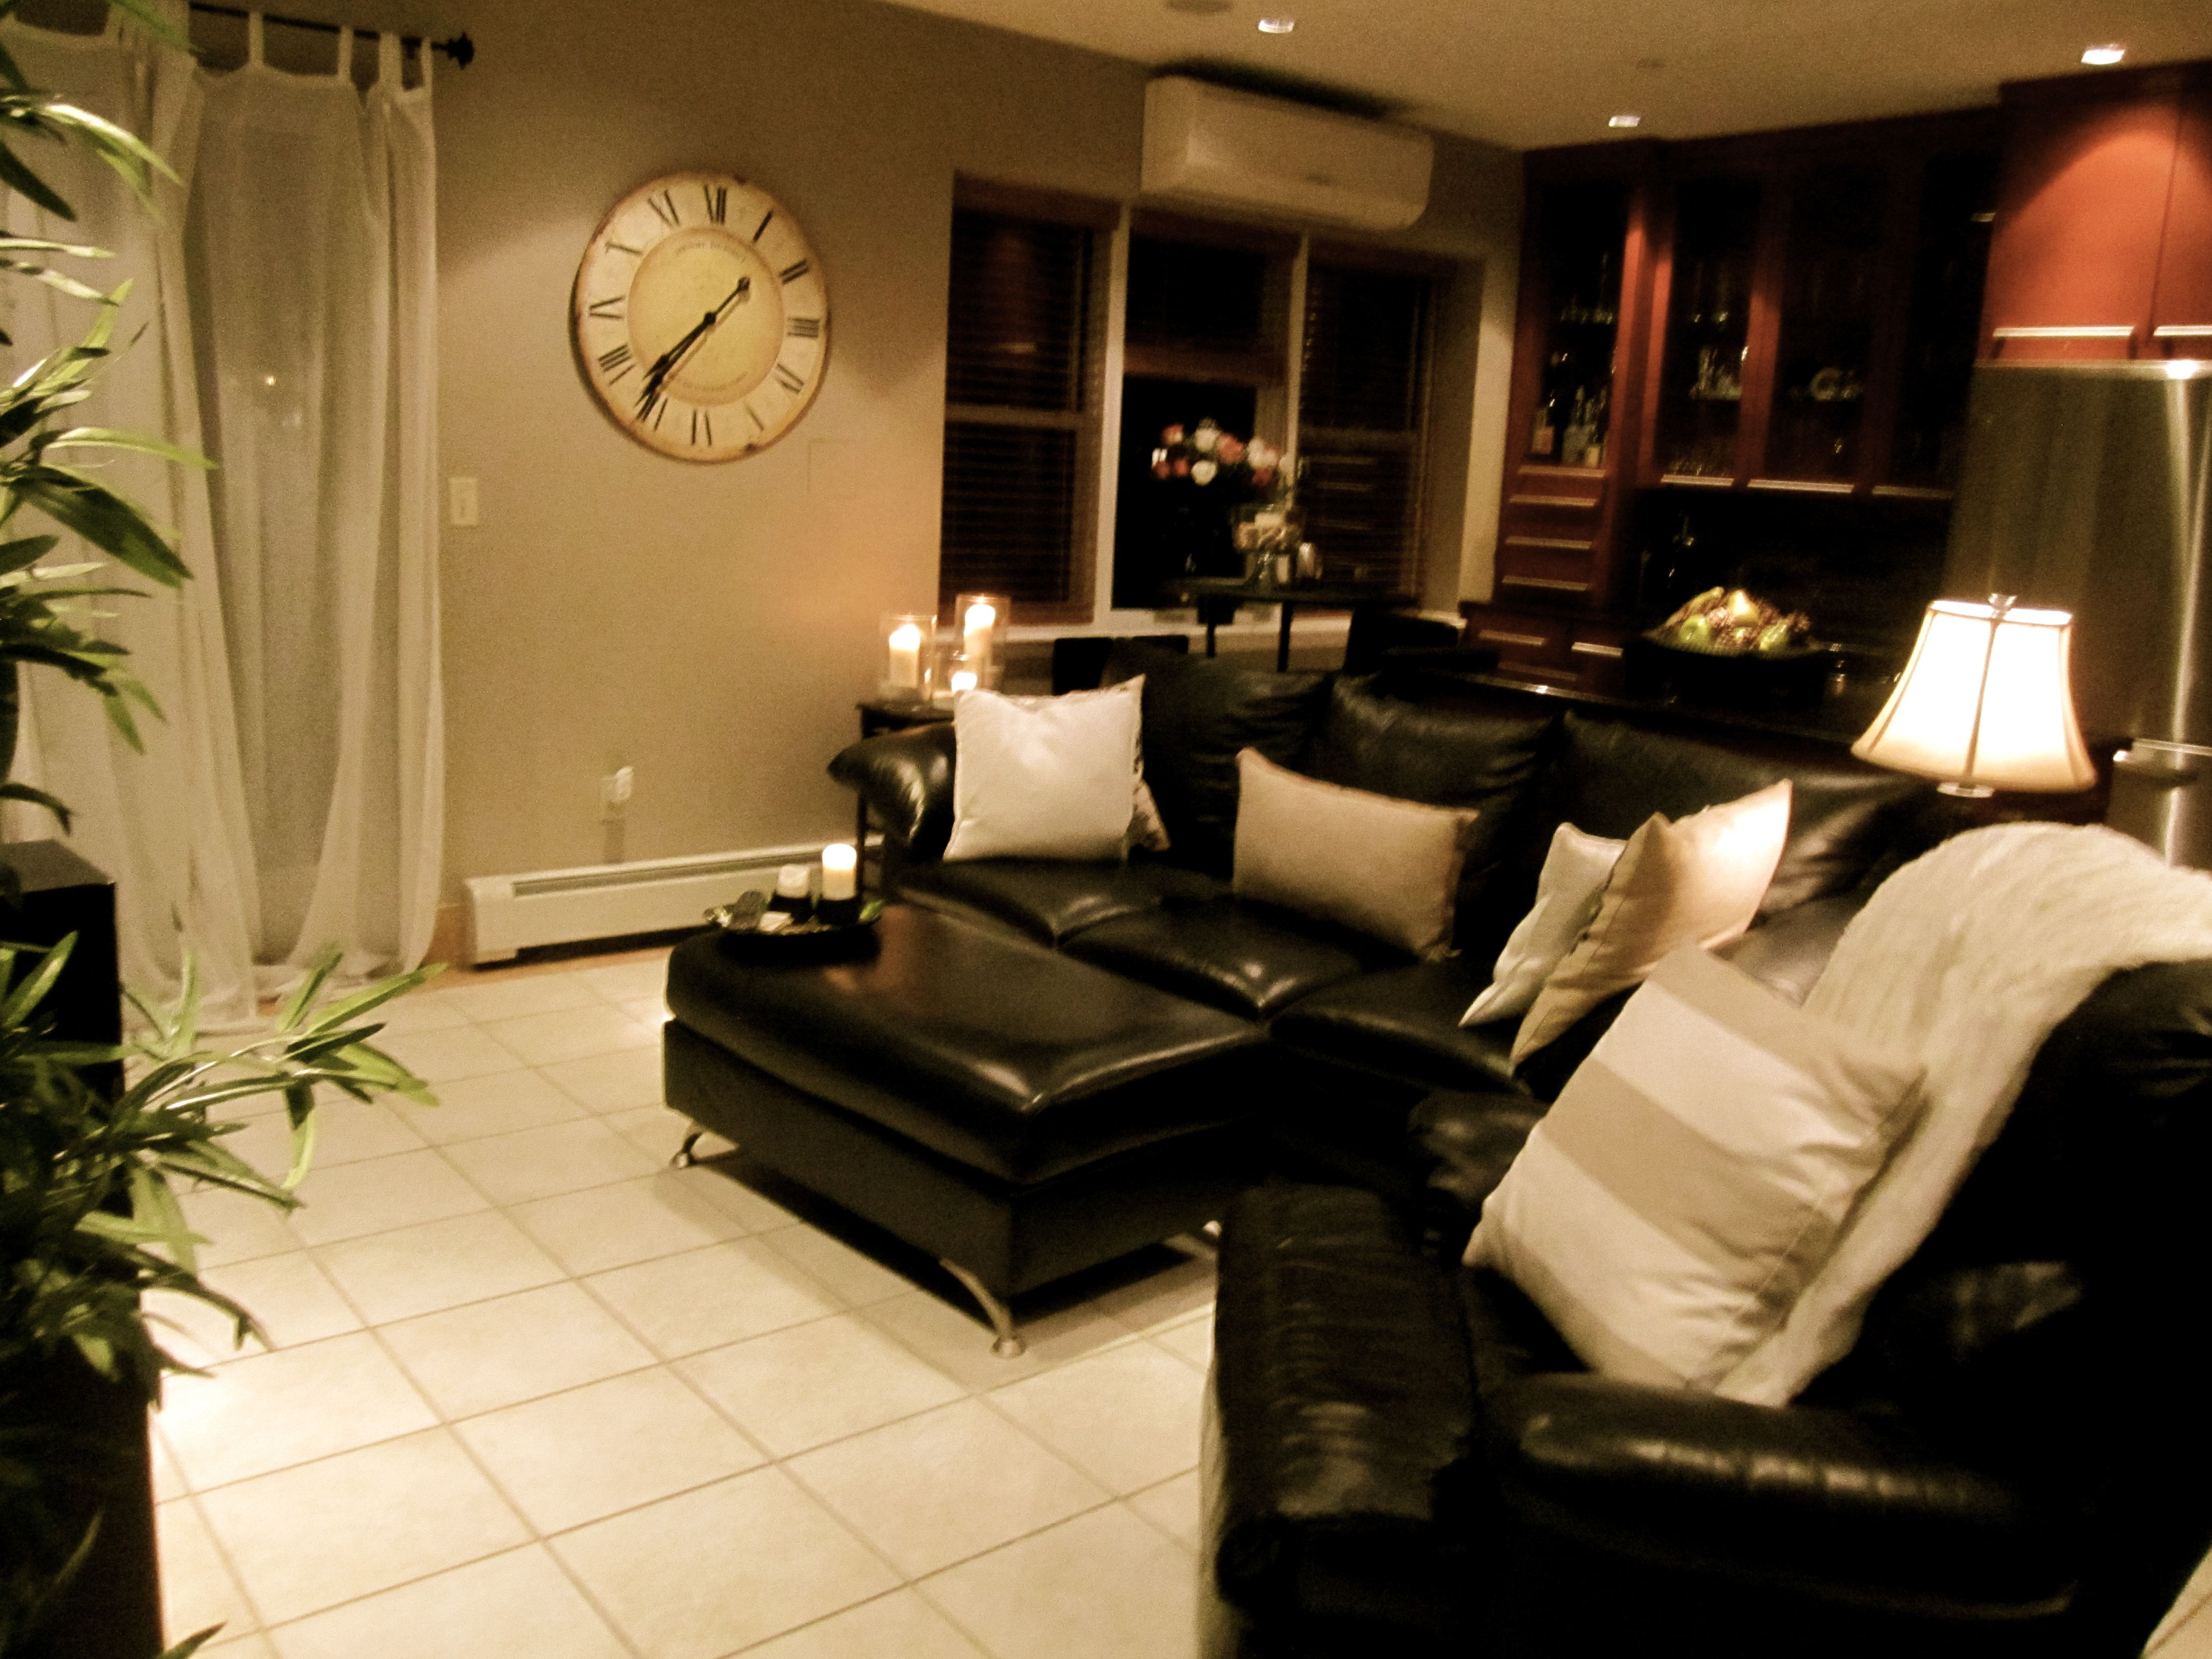 Living Room Decorating Ideas With Black Leather Furniture Living Room Brighten Up Dark Couches With Light Pillows